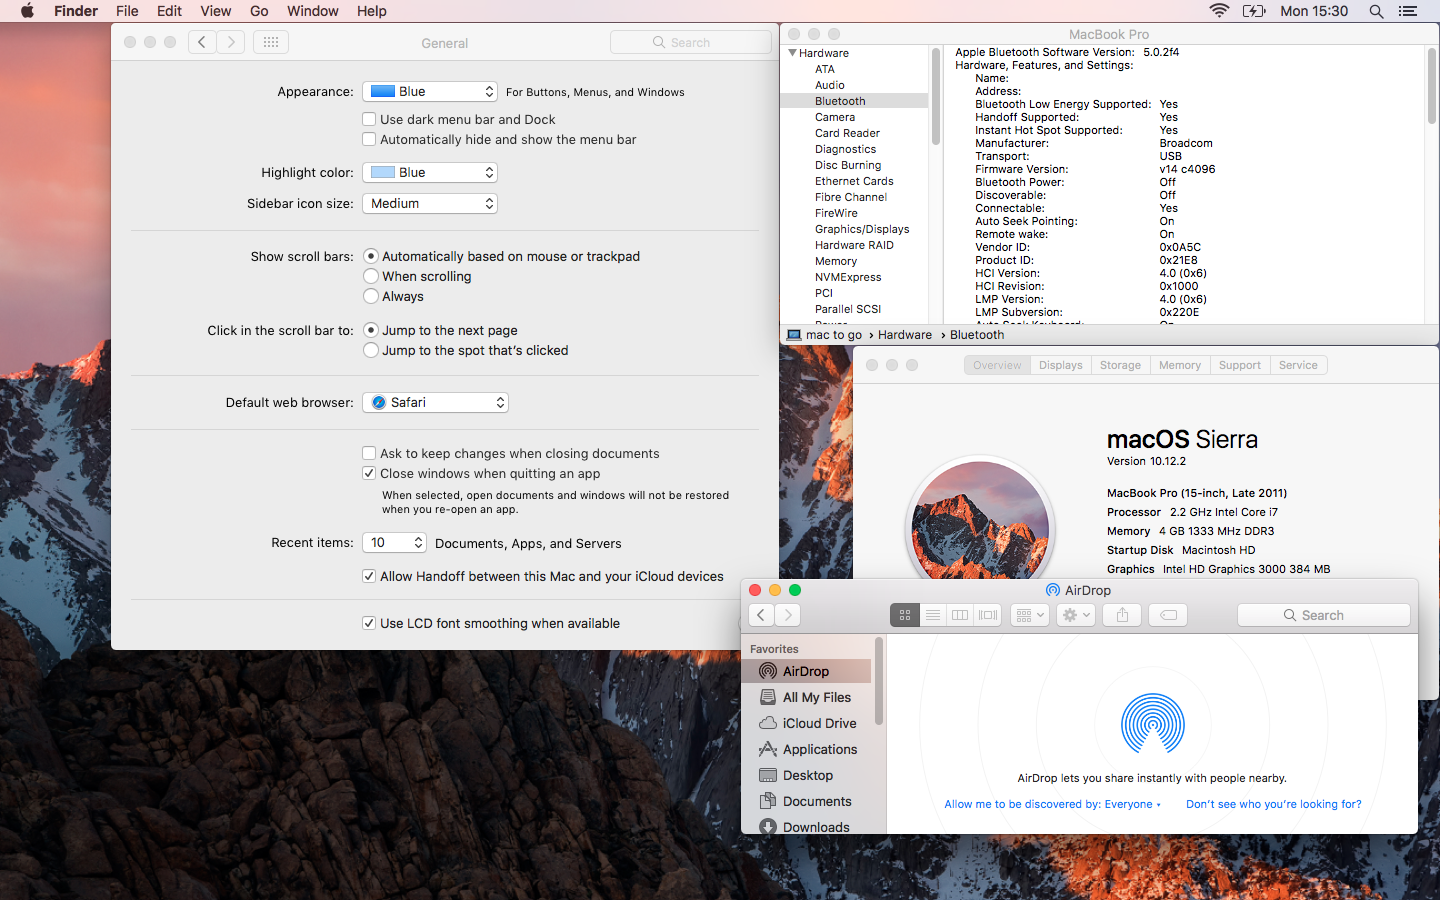 How to add Continuity features to older Macs